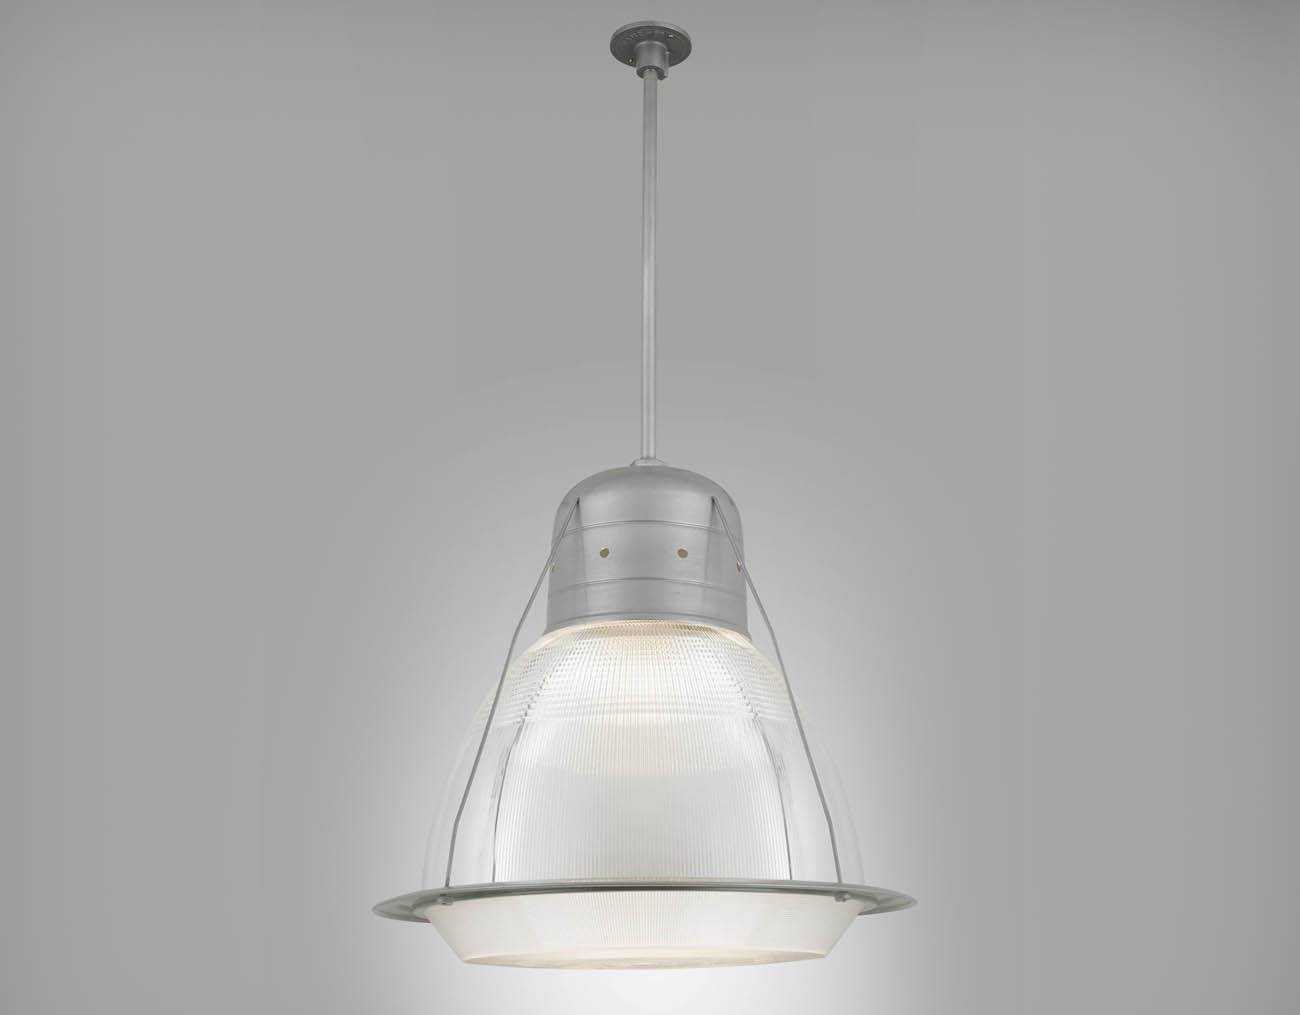 Pendant Light Fixtures For Commercial Settings | Aries Sun Within Commercial Hanging Lights Fixtures (View 13 of 15)